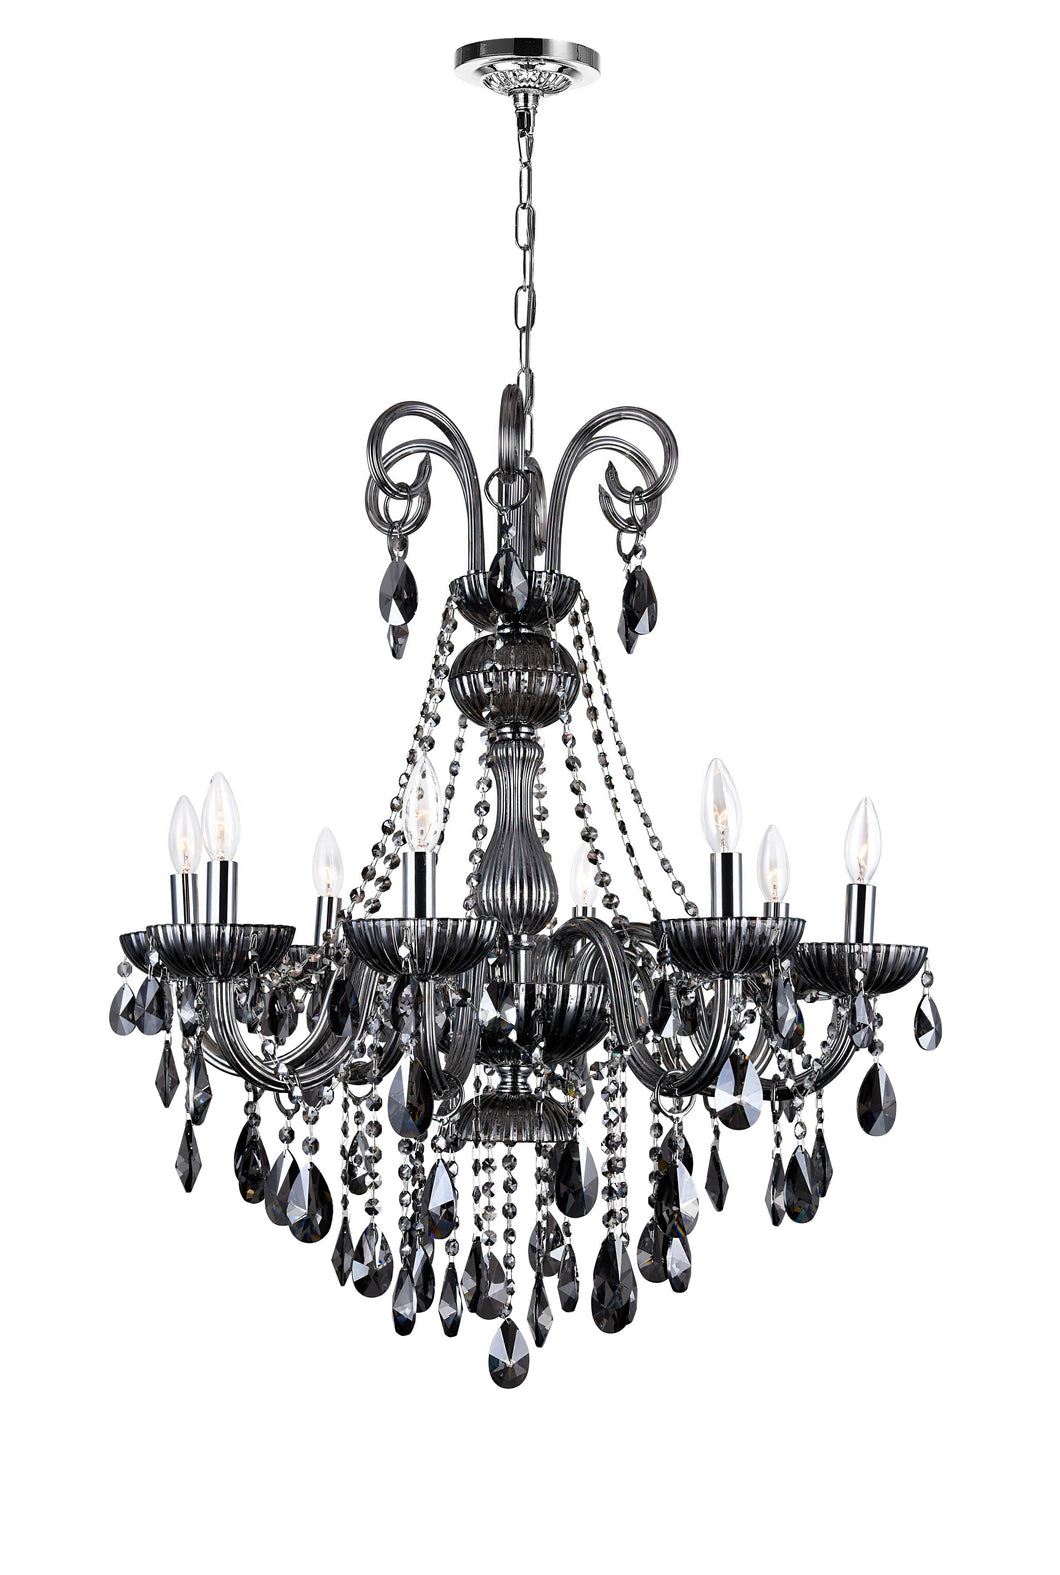 8 LIGHT UP CHANDELIER WITH CHROME FINISH - Dreamart Gallery